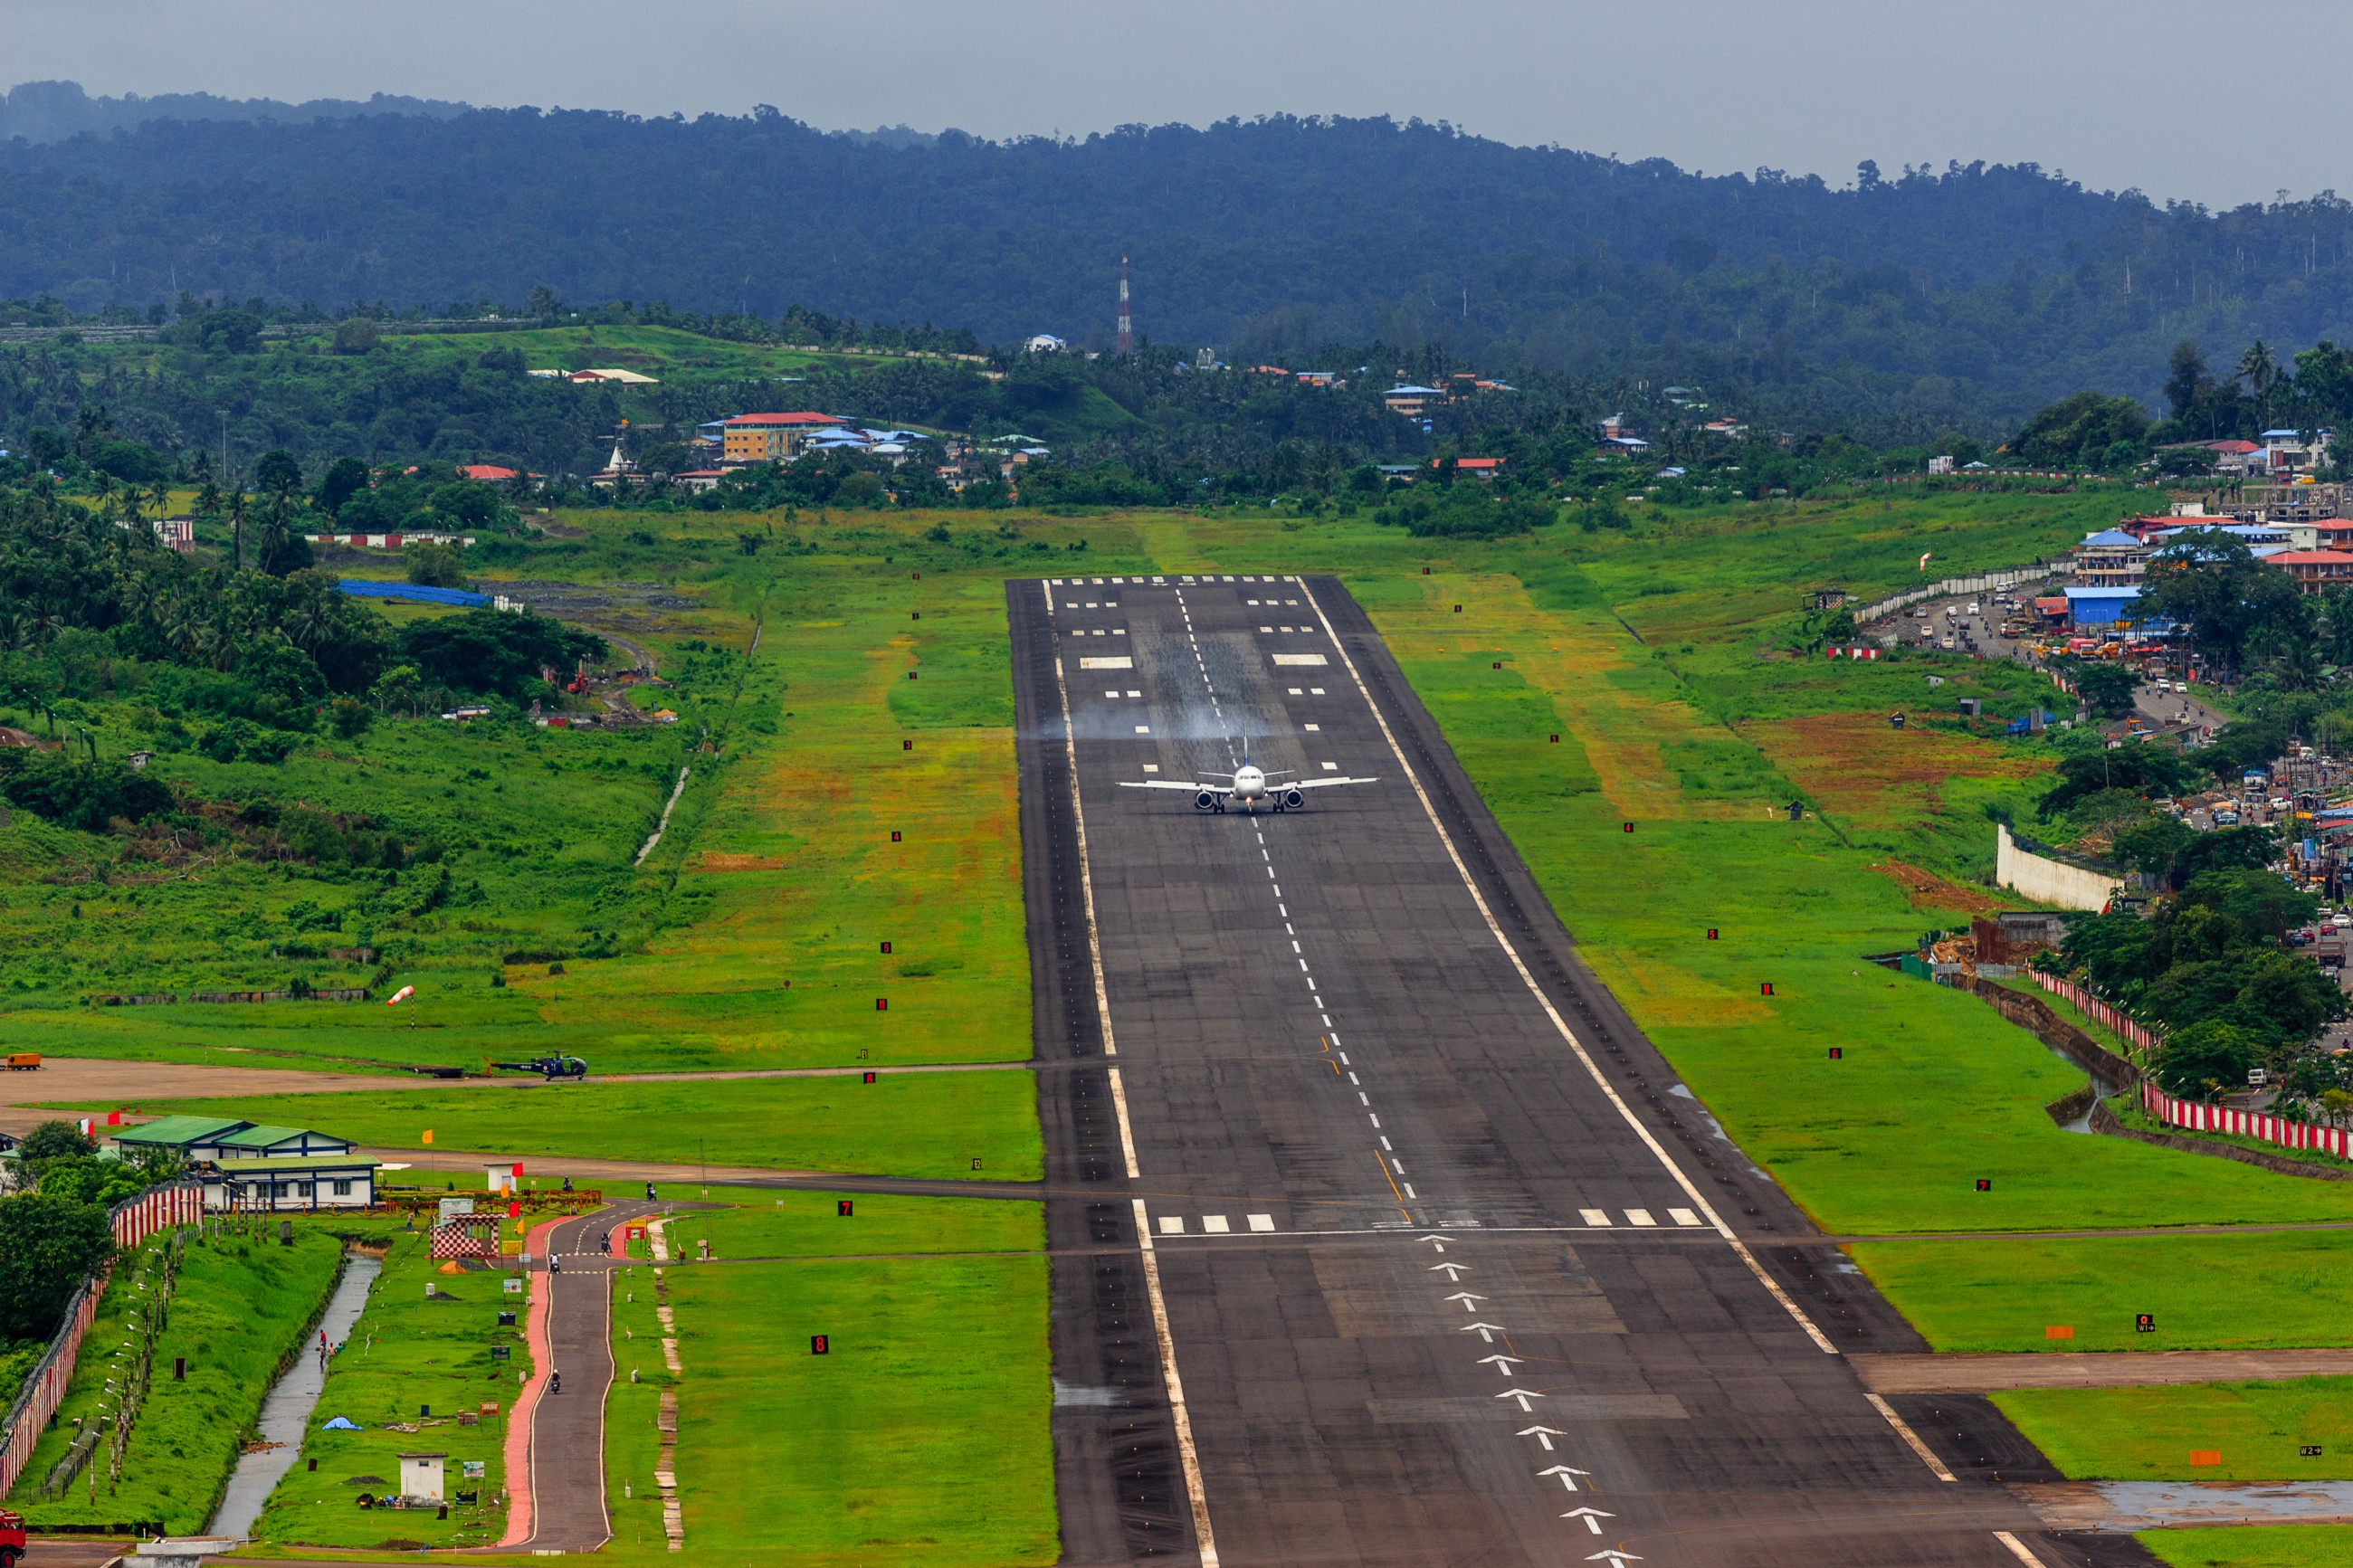 These Are The 10 Most Dangerous Airports in the World